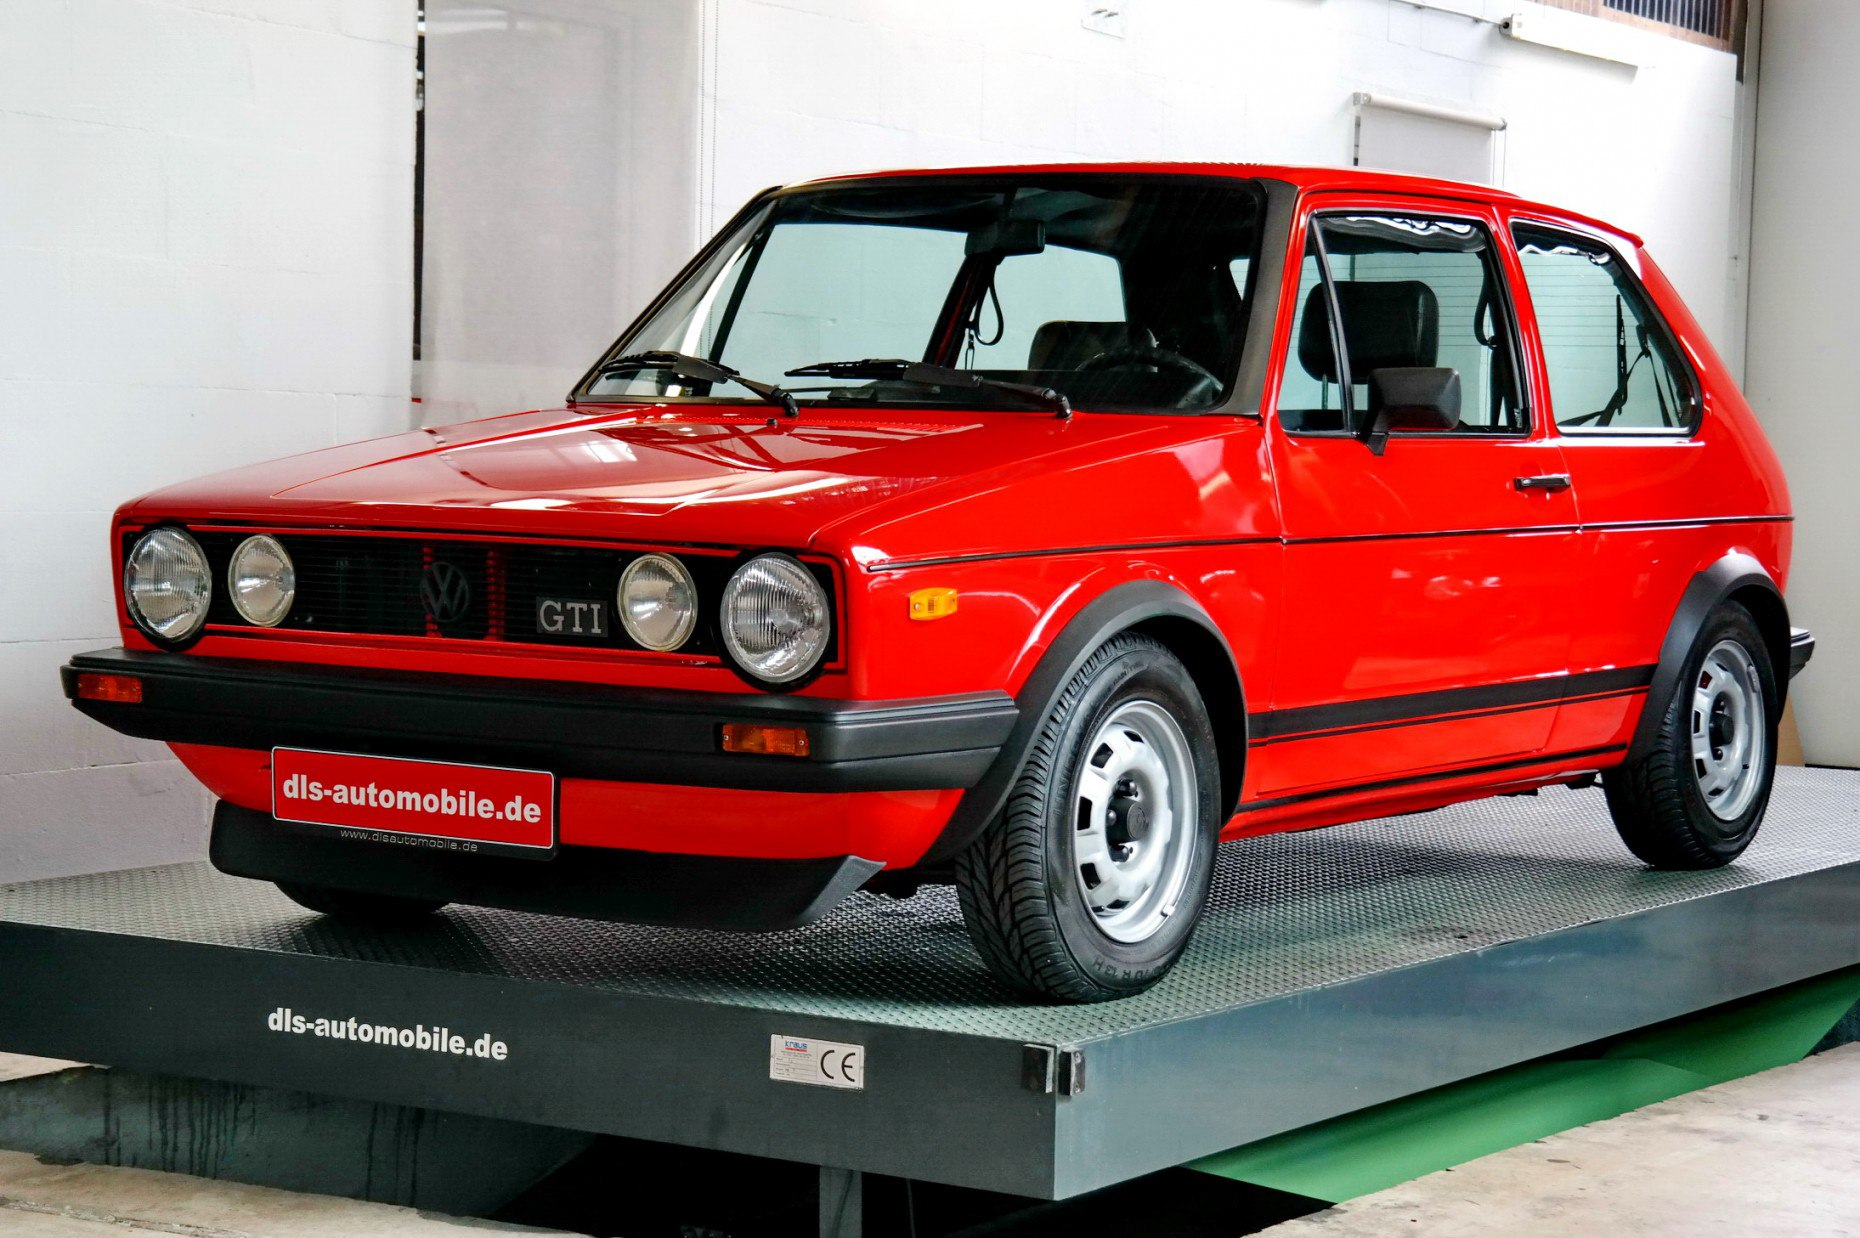 volkwagen golf 1 gti 1982. Black Bedroom Furniture Sets. Home Design Ideas